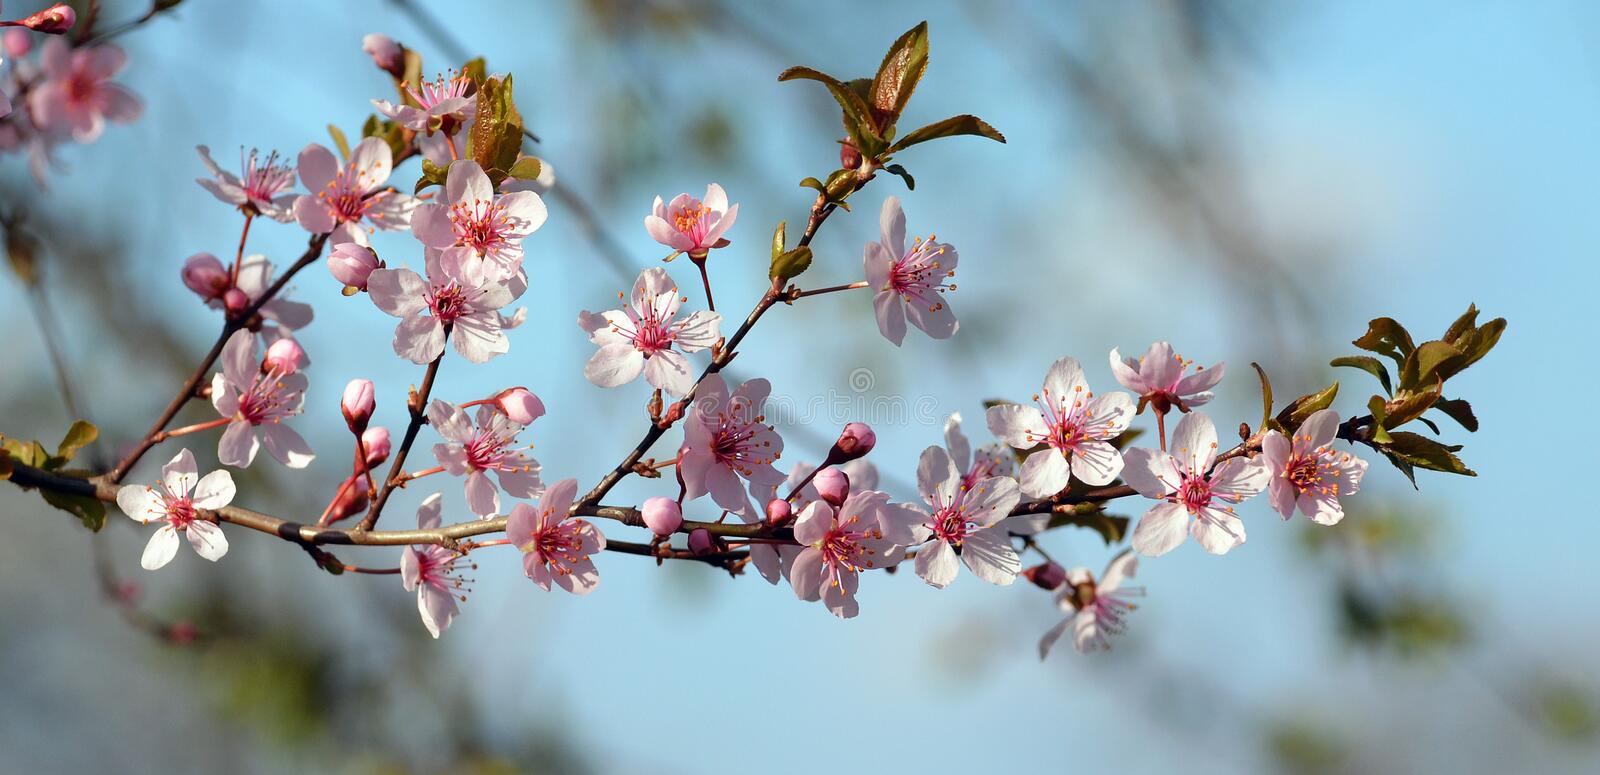 Cherry plum branch in blossom. Cherry plum tree branch in blossom royalty free stock photo